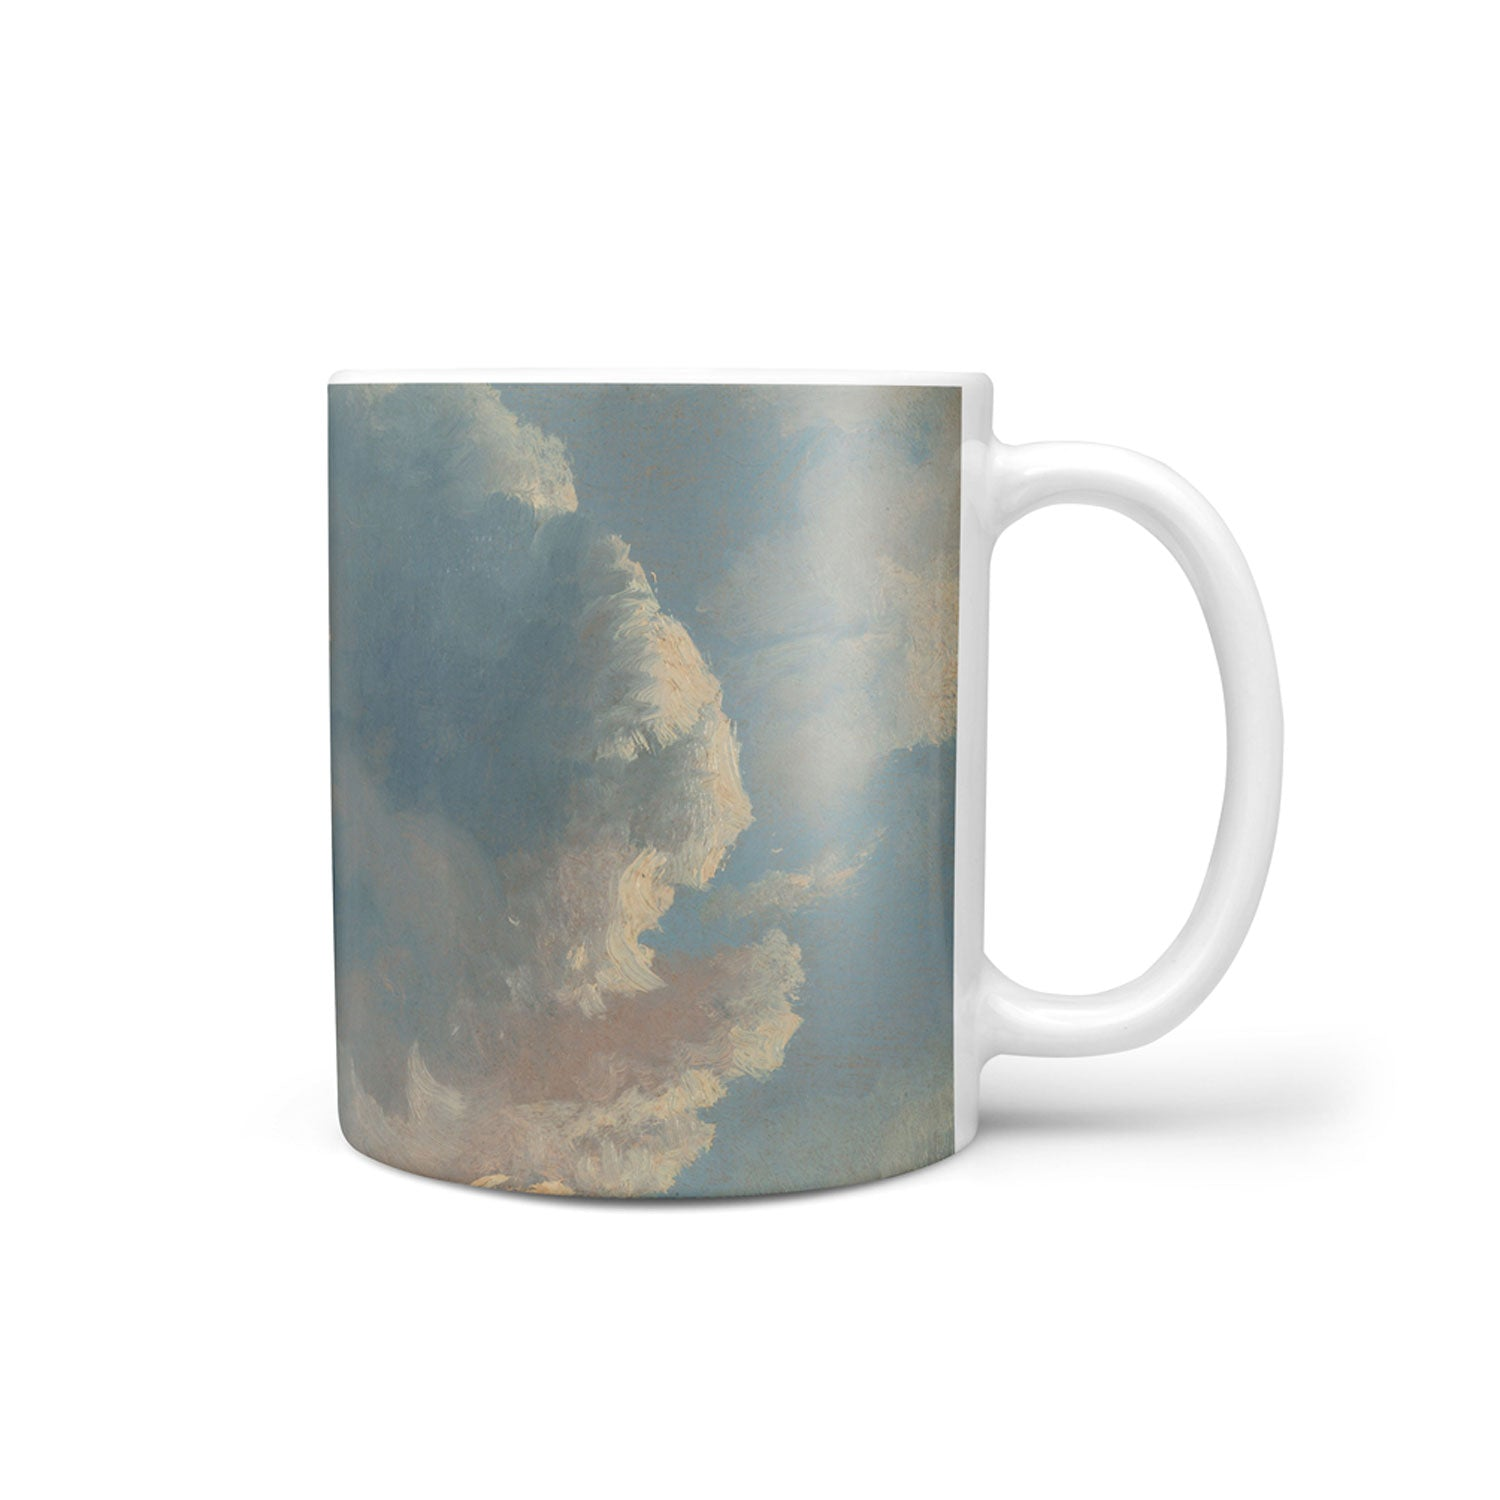 unusual mug with blue cream painted cloud design